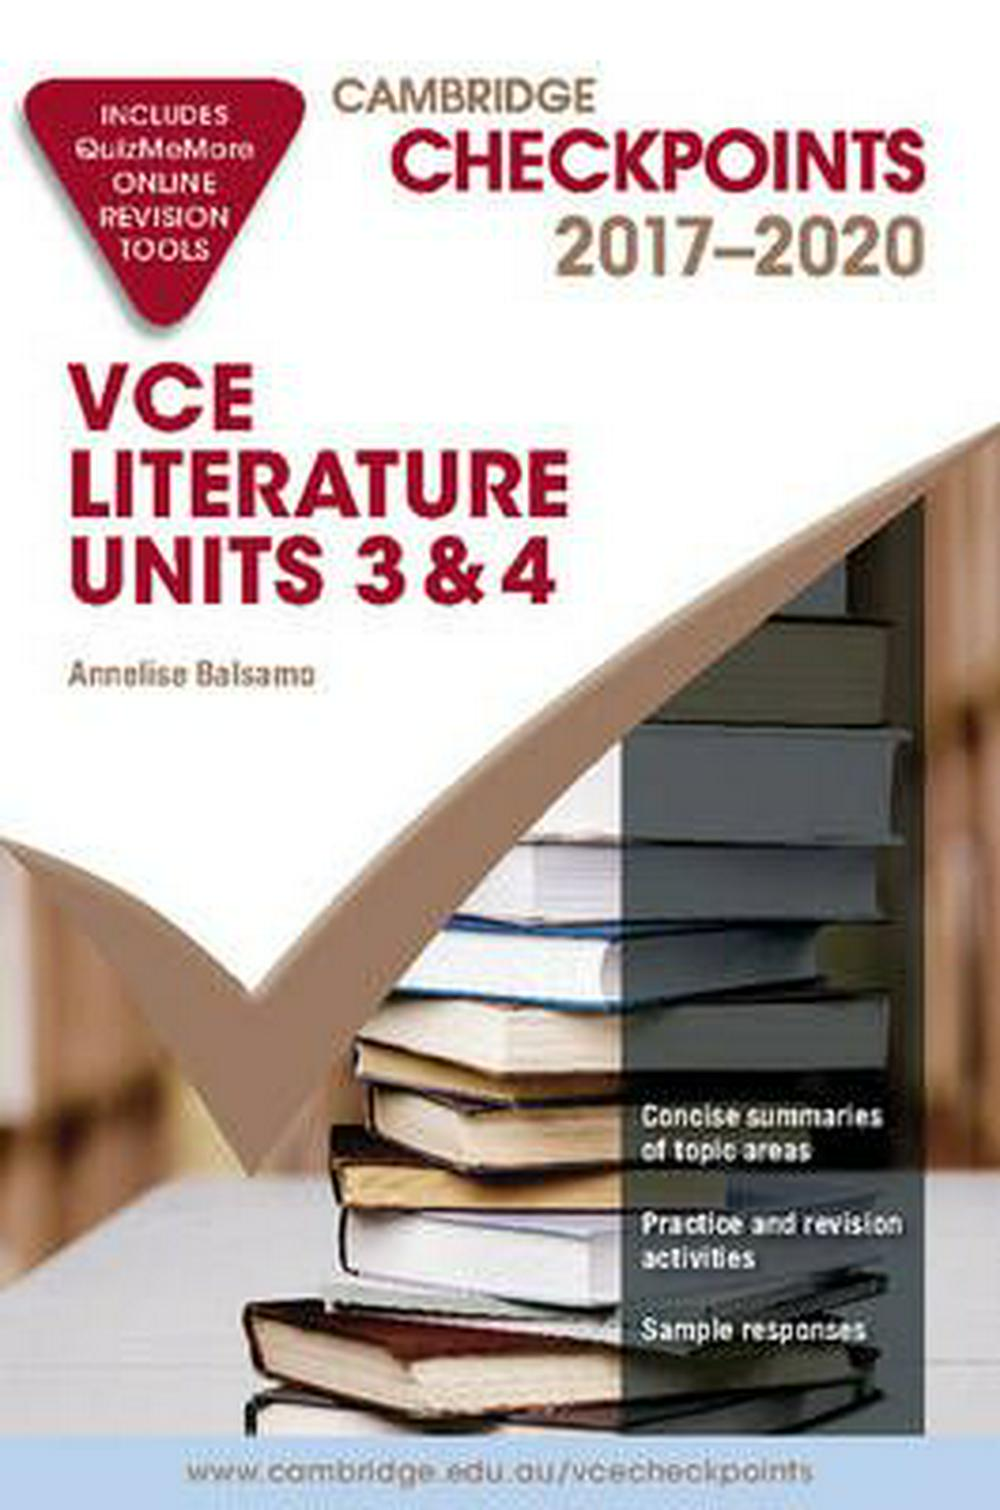 Cambridge Checkpoints VCE Literature 2017-19Cambridge Checkpoints